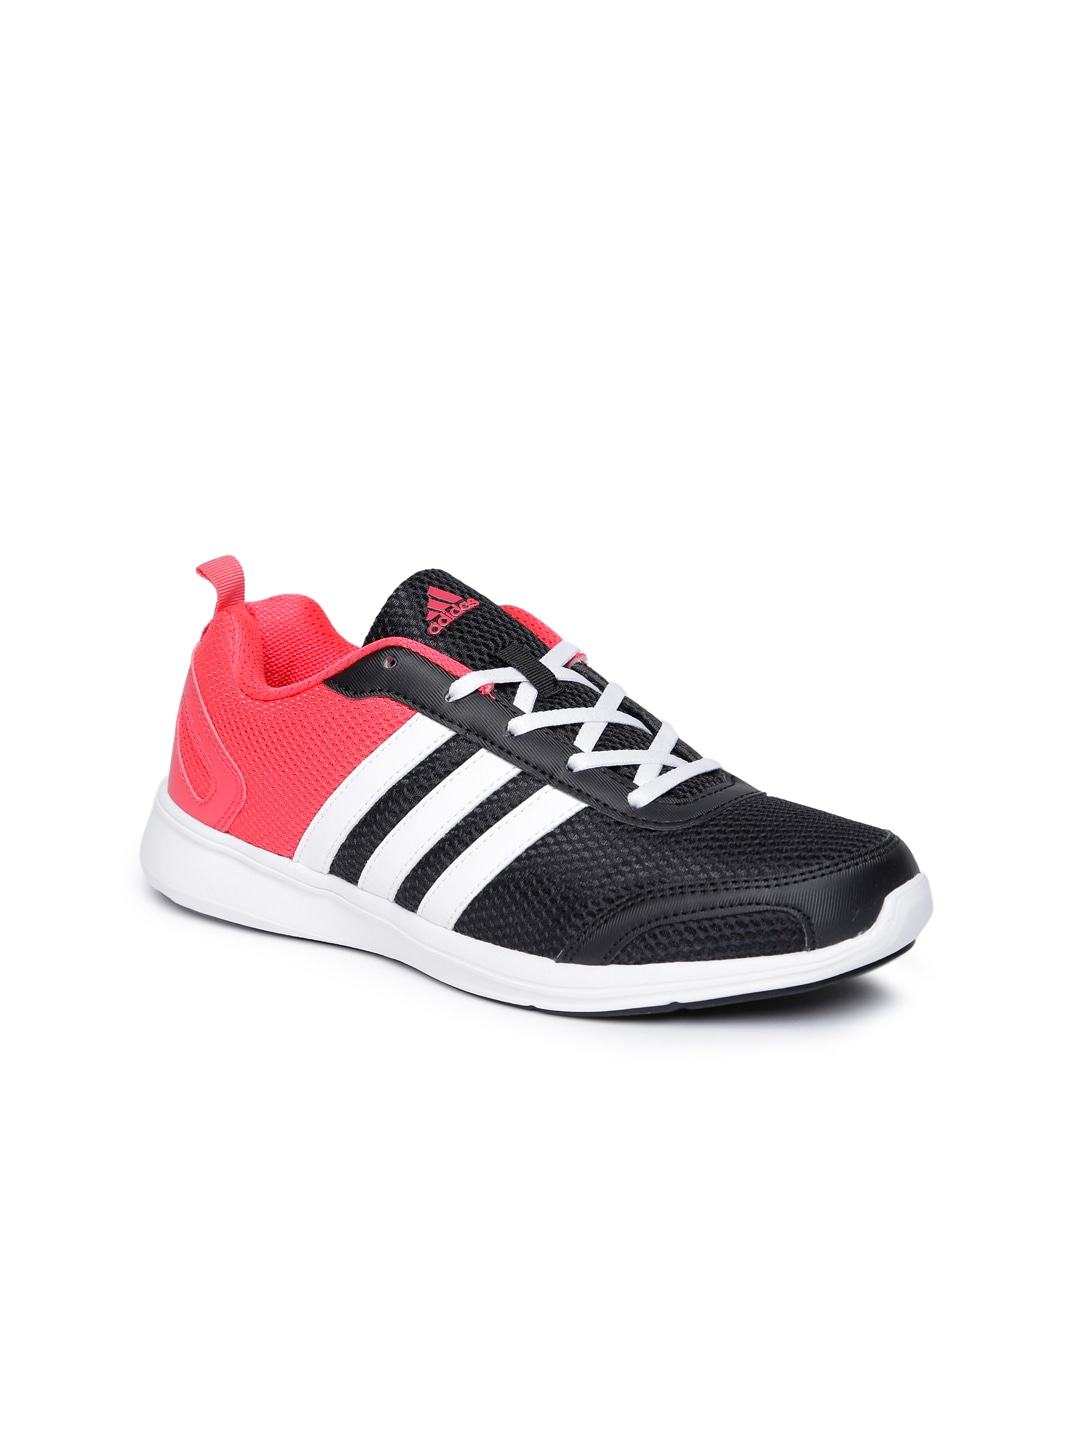 Adidas Shoes For Women Black 2017